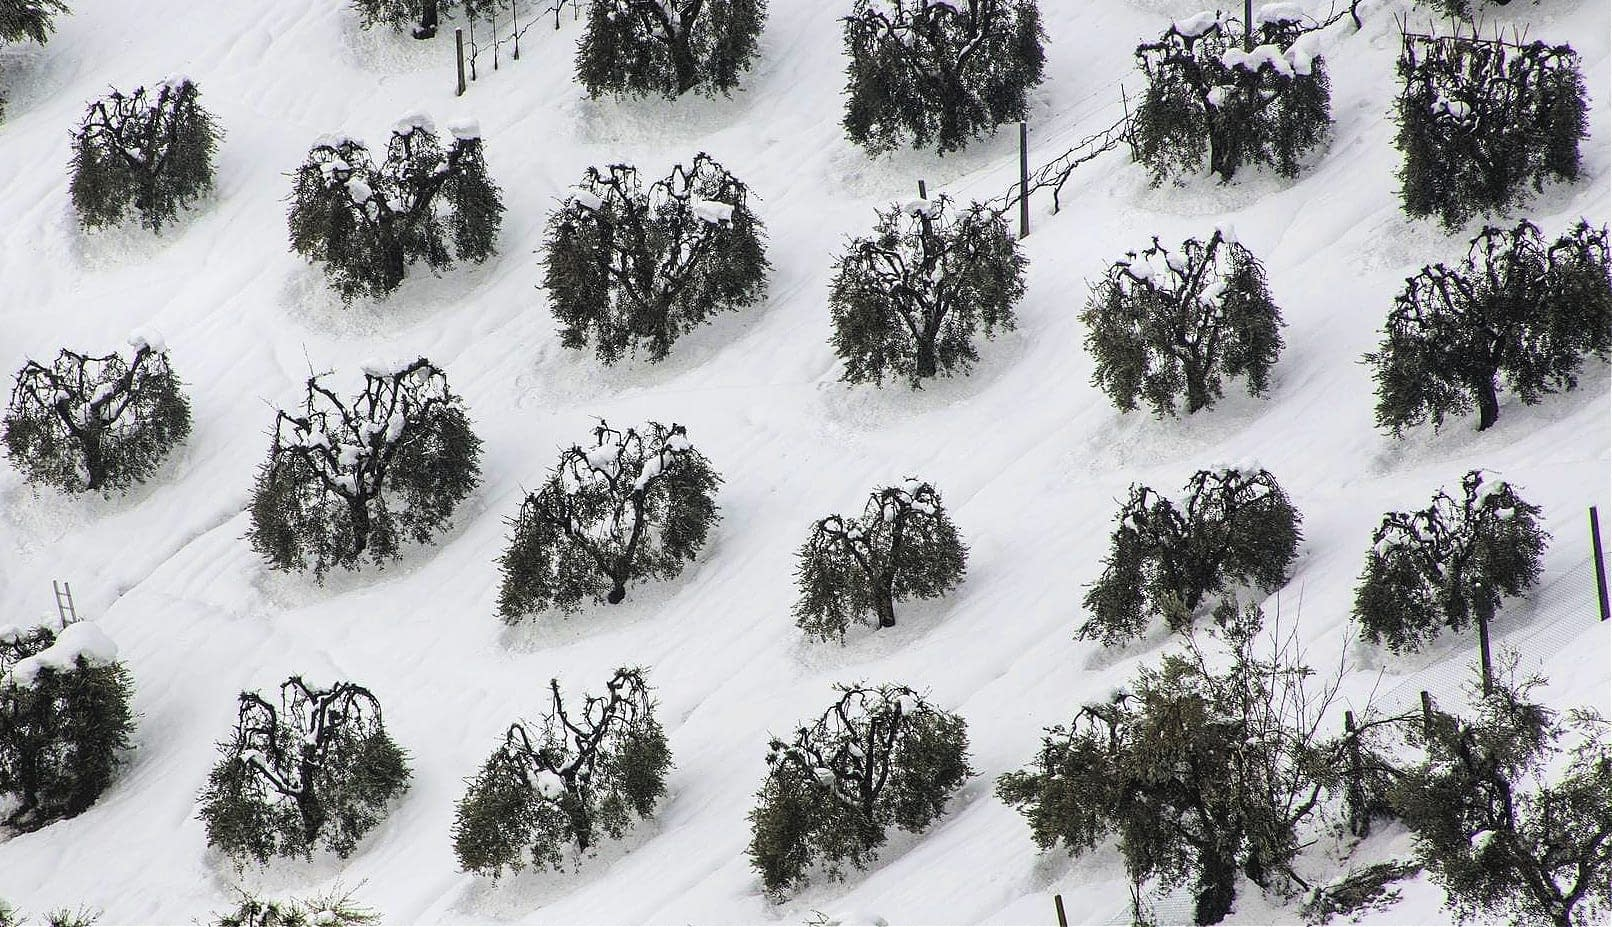 business-europe-italy-approves-aid-for-mills-hit-by-2018-snow-storm-olive-oil-times